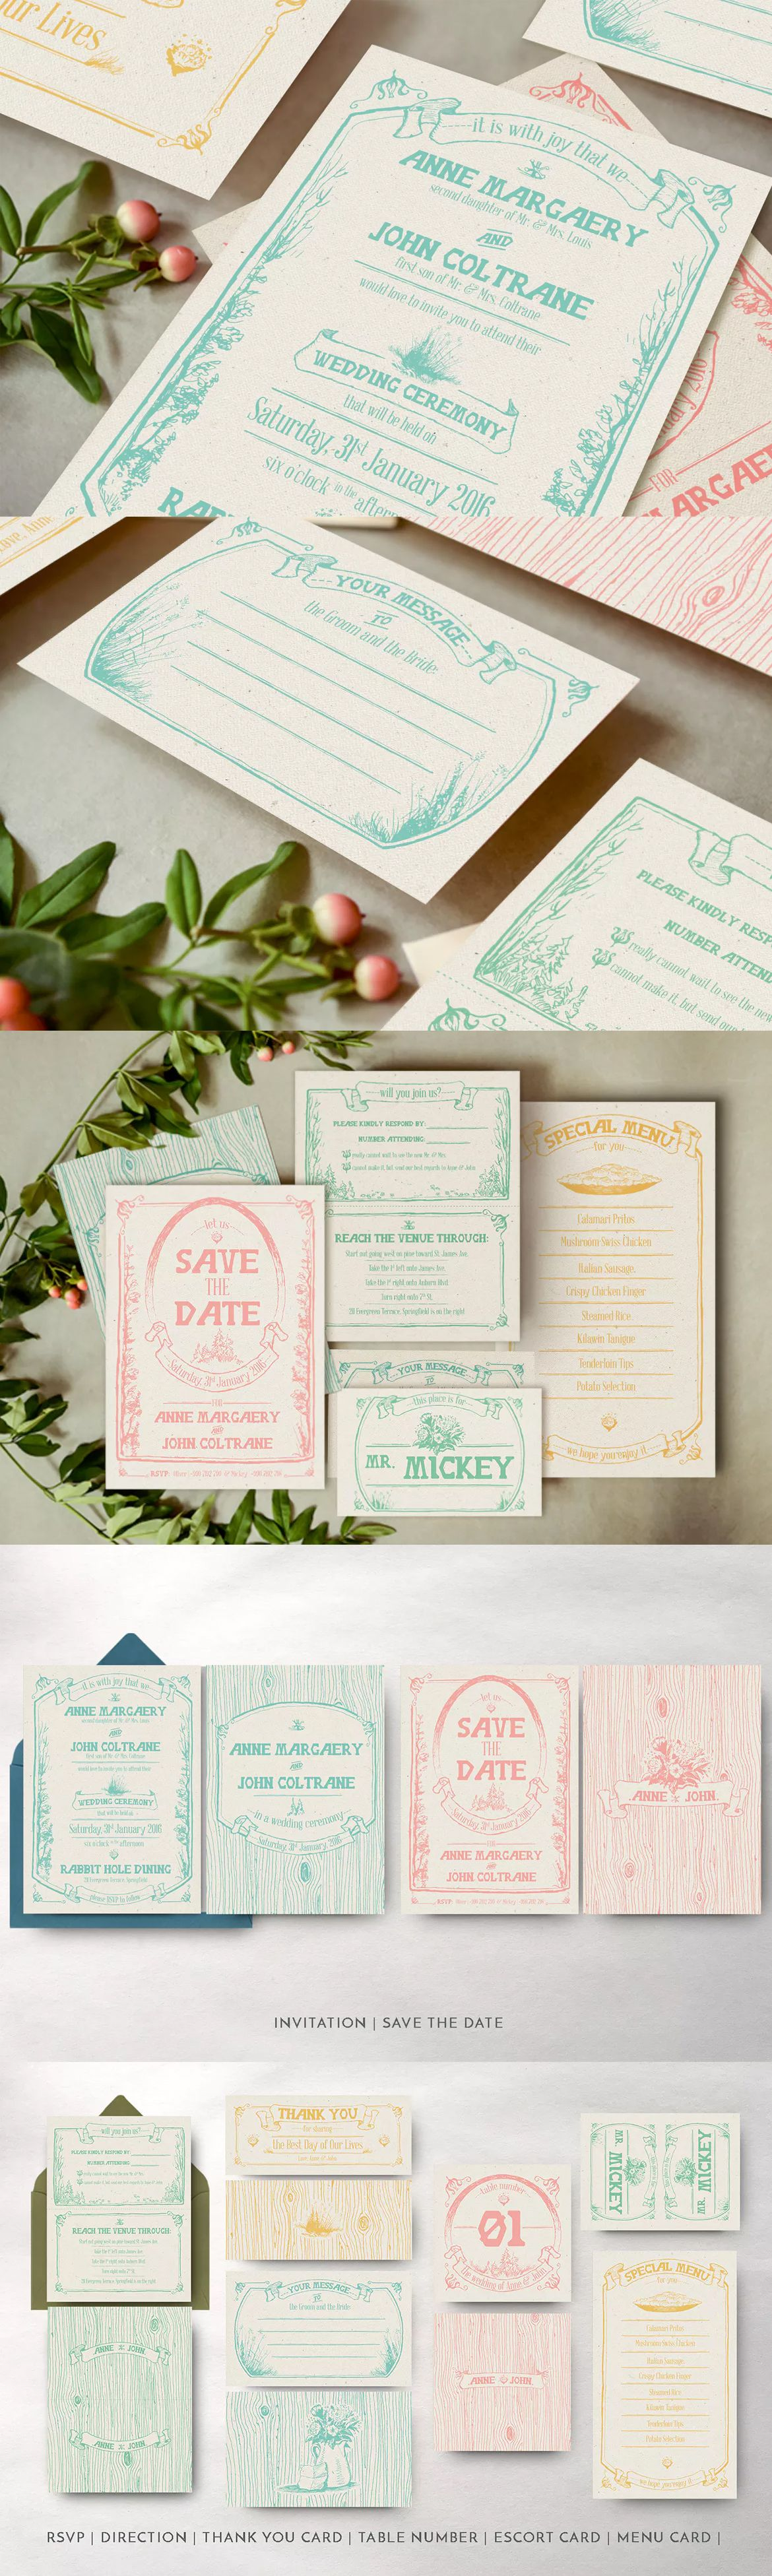 Whimsical forest wedding invitation template ai eps psd inv whimsical forest wedding invitation by august10 on envato elements stopboris Images